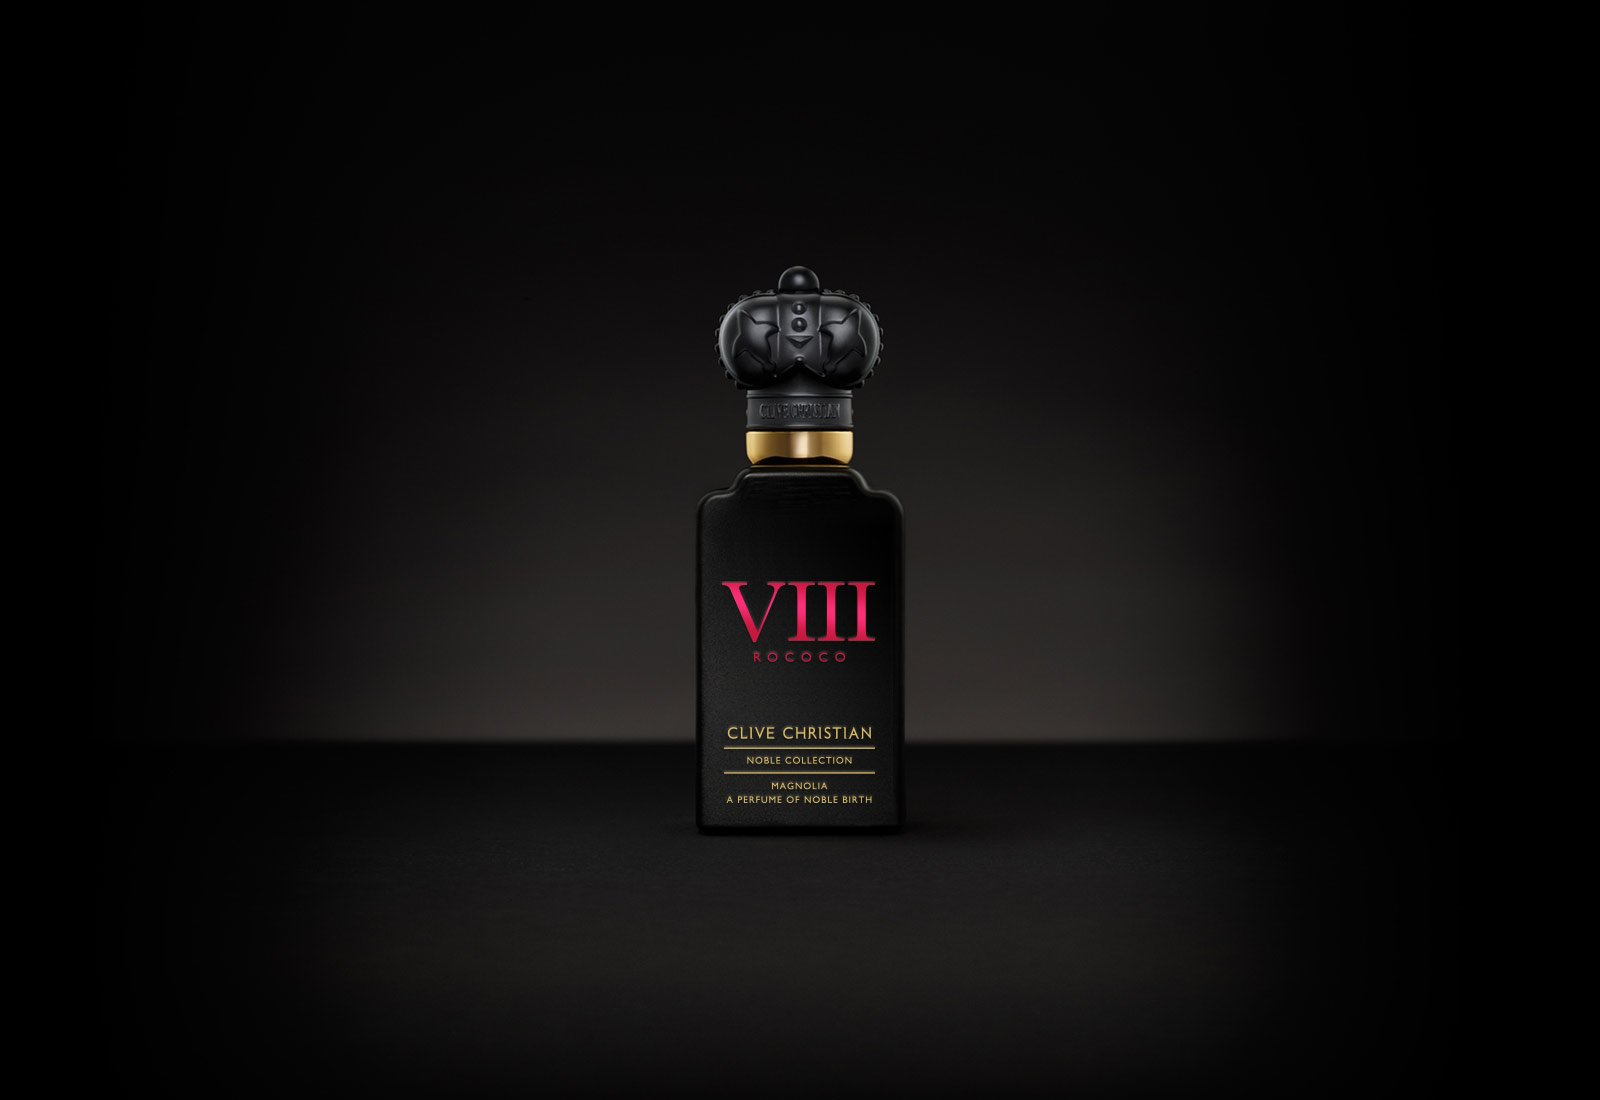 Clive Christian's luxury perfume VIII Magnolia comes in a black bottle with red writing